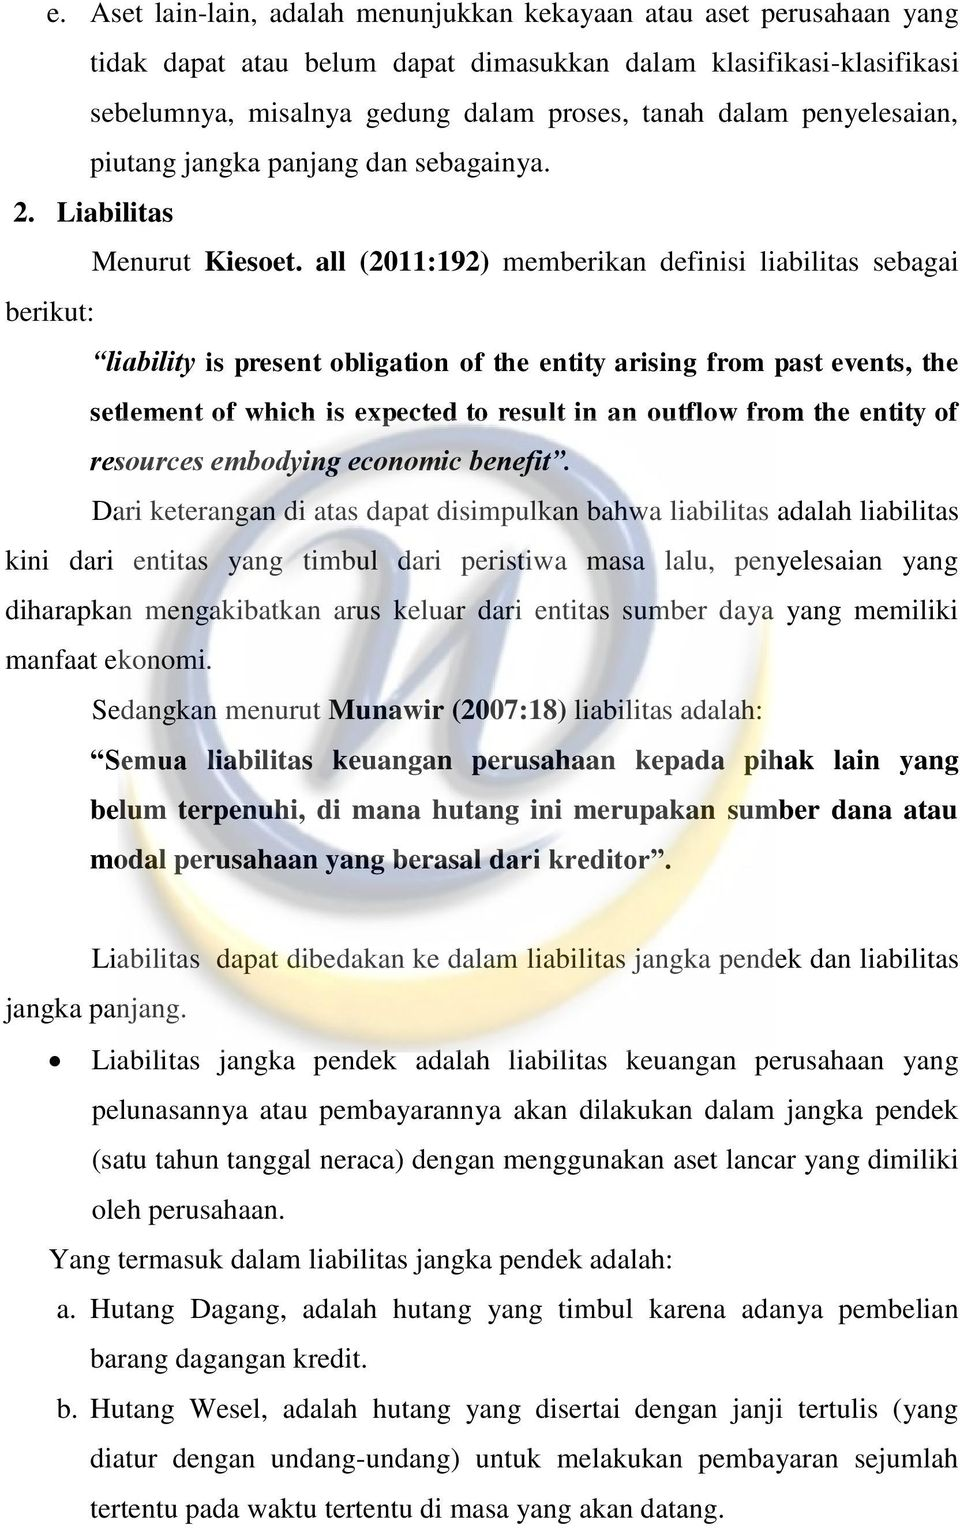 all (2011:192) memberikan definisi liabilitas sebagai berikut: liability is present obligation of the entity arising from past events, the setlement of which is expected to result in an outflow from